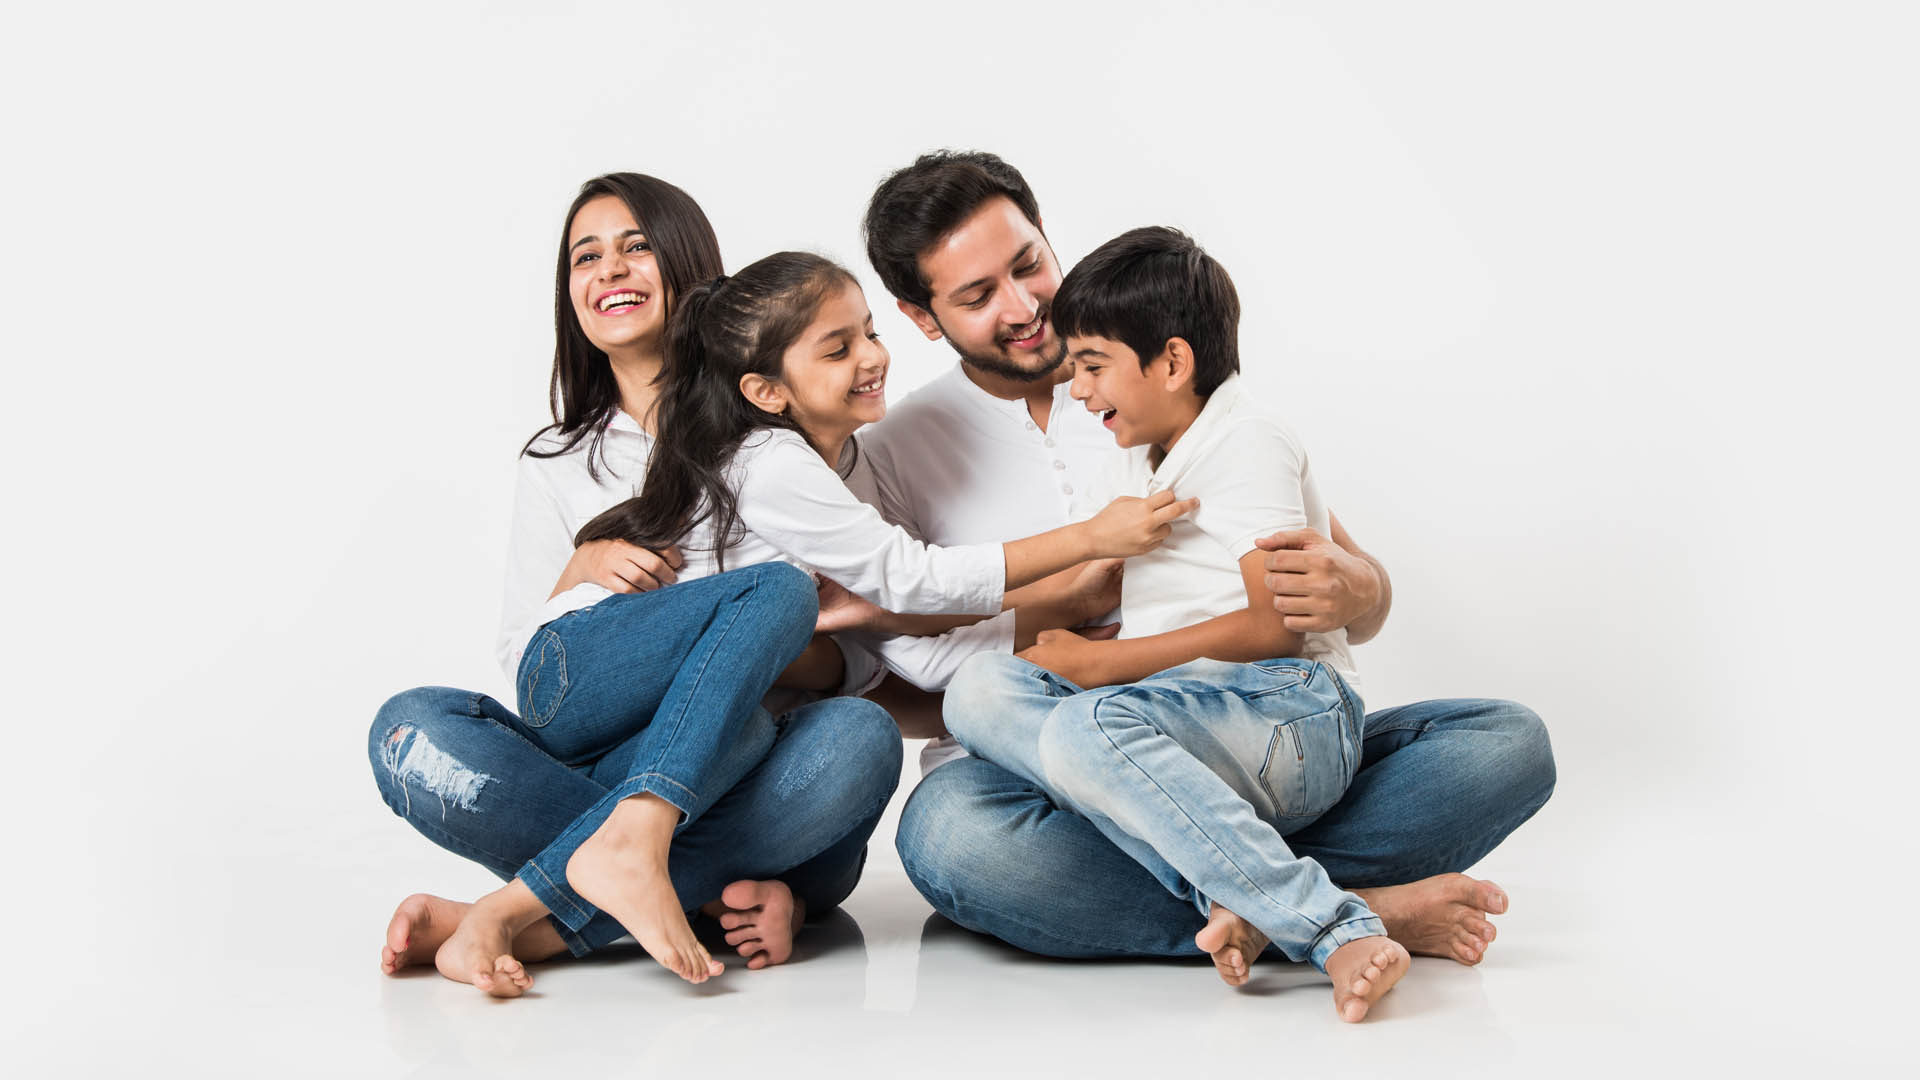 Pillars of Parenting: (2) Staying Positive – Empowered & Non -Judgemental